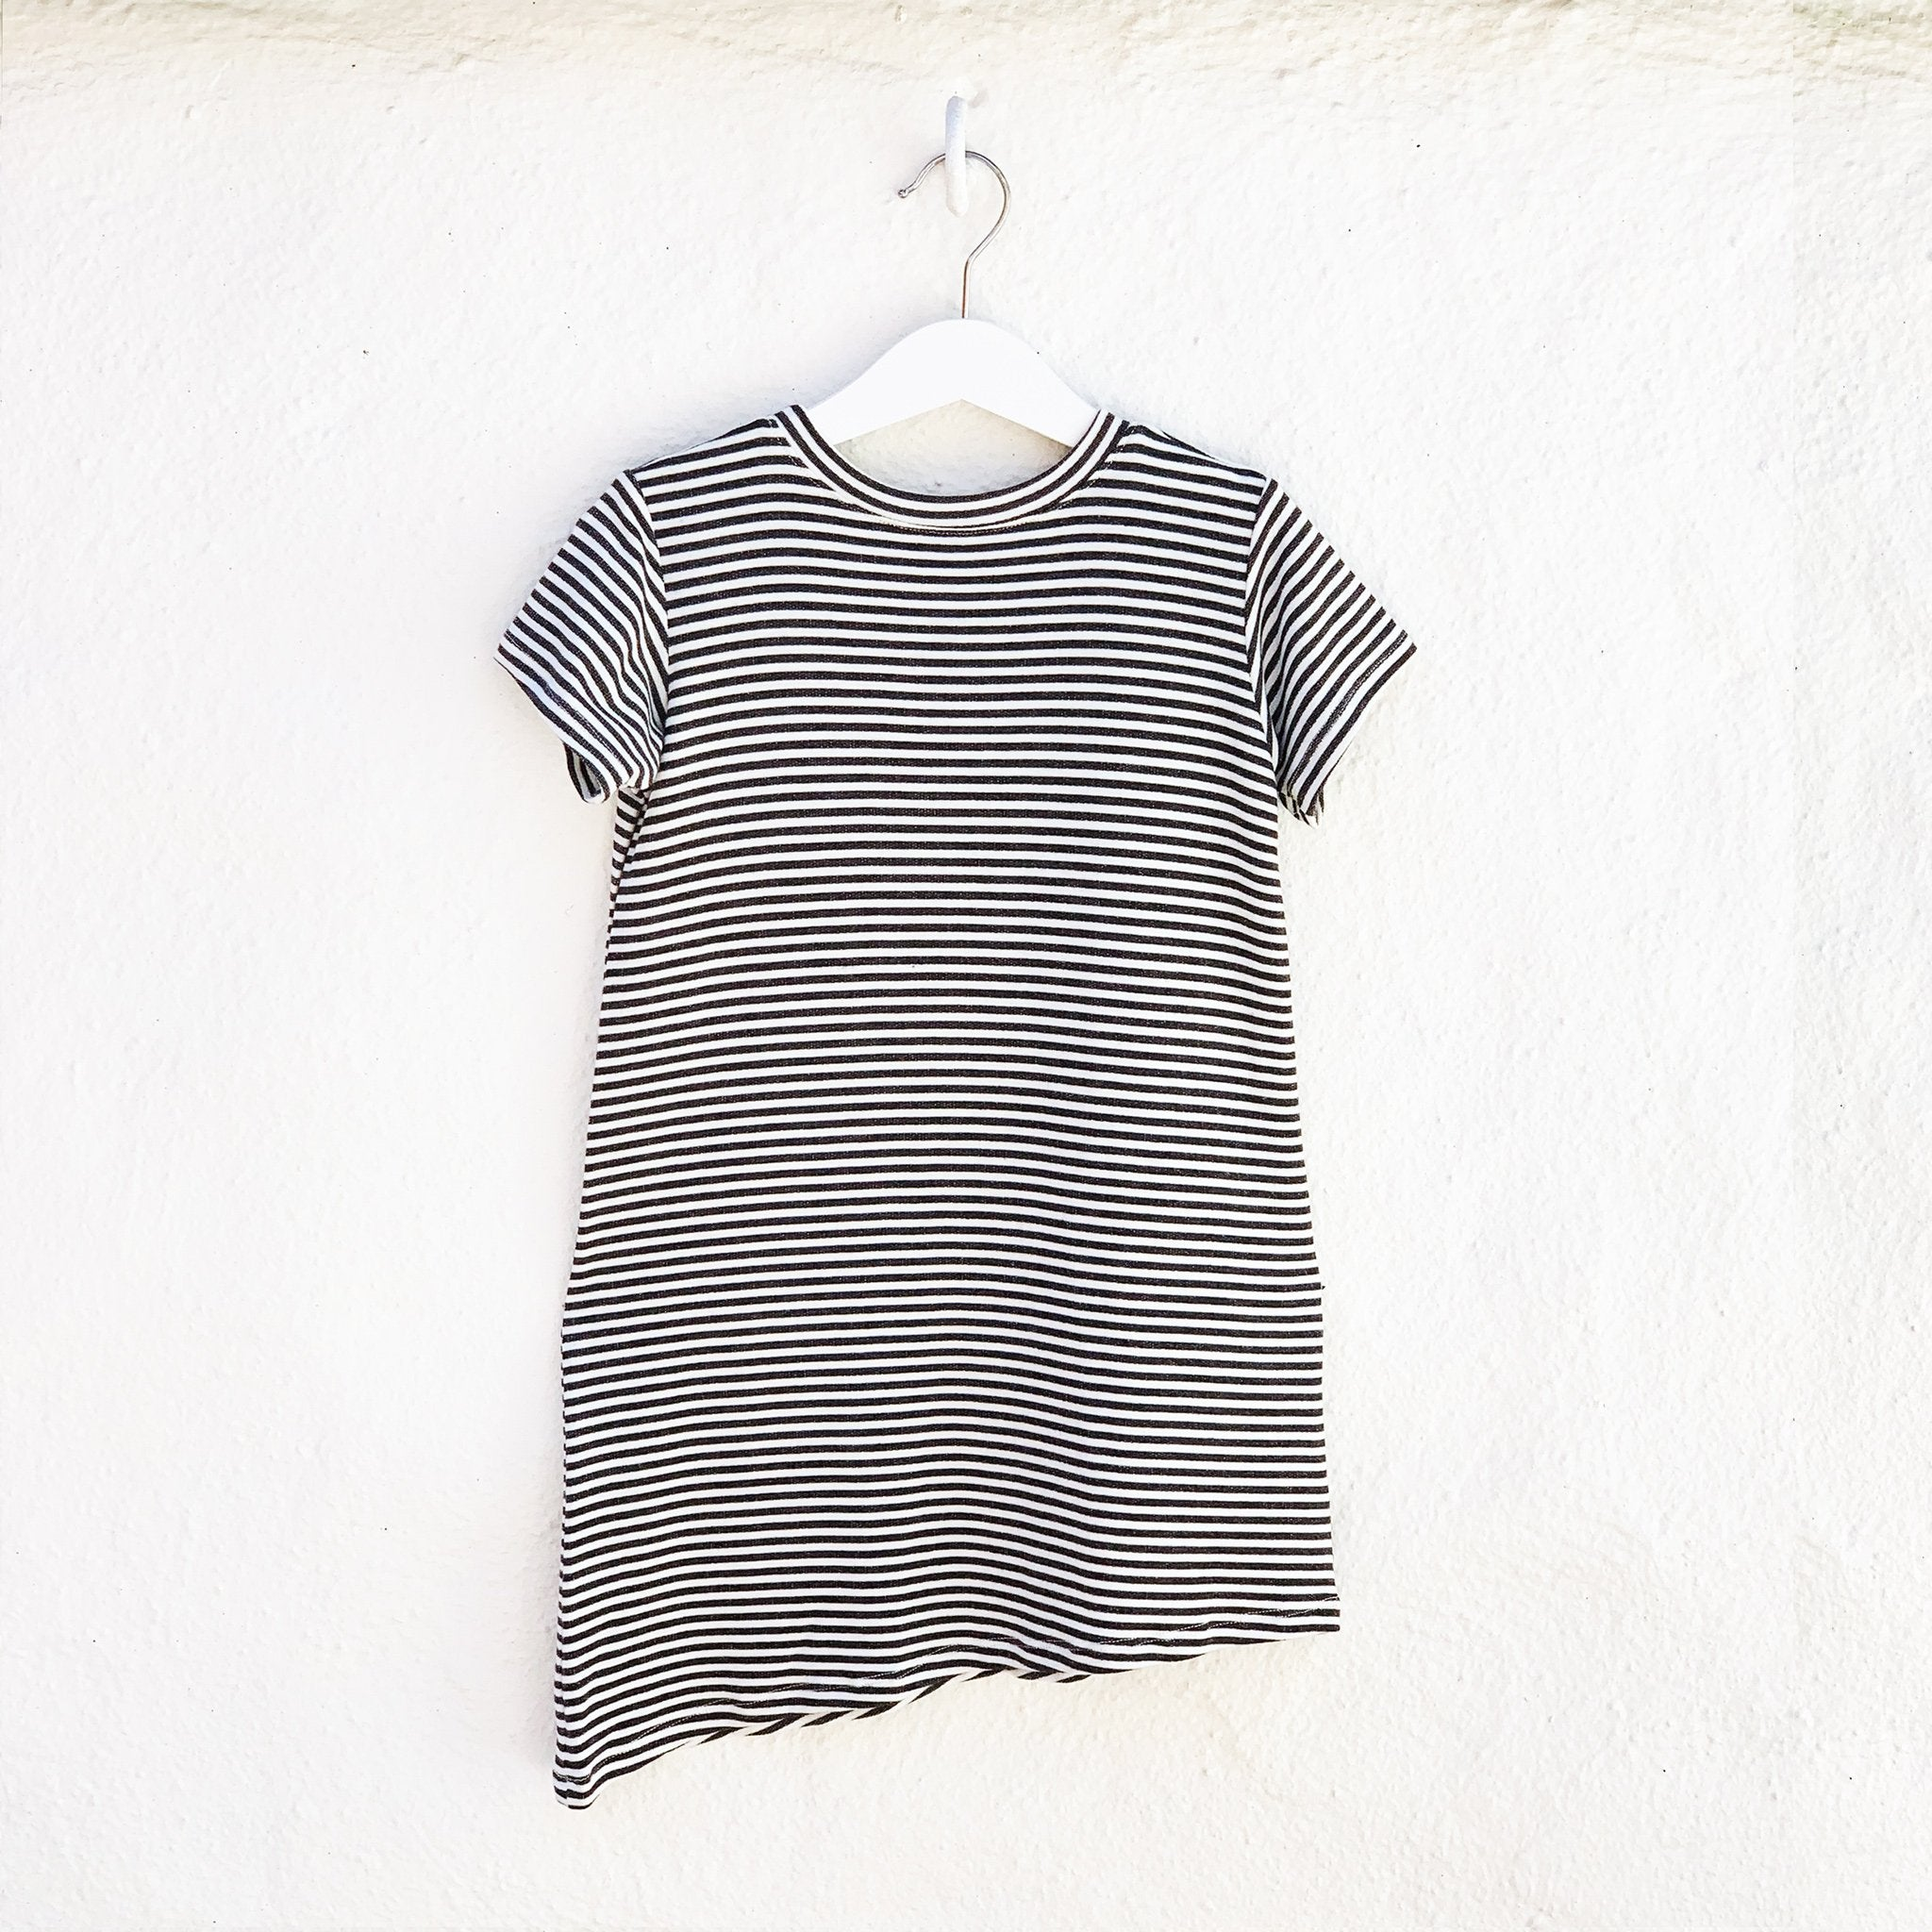 Asymmetric T-shirt Dress - Black + White Stripes